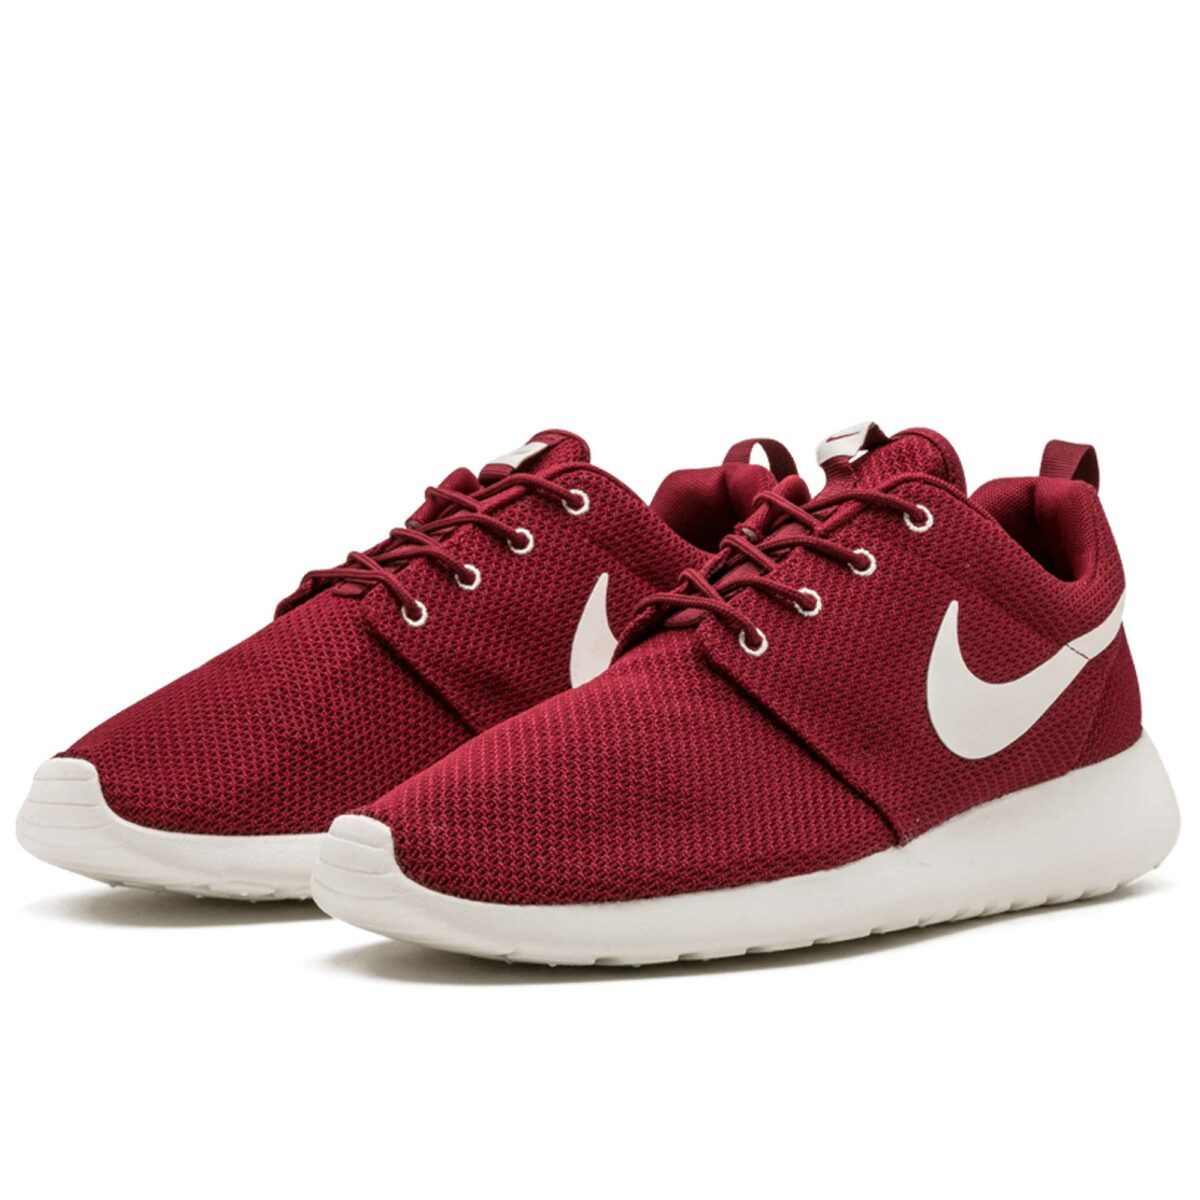 nike roshe run red white 511881_610 купить